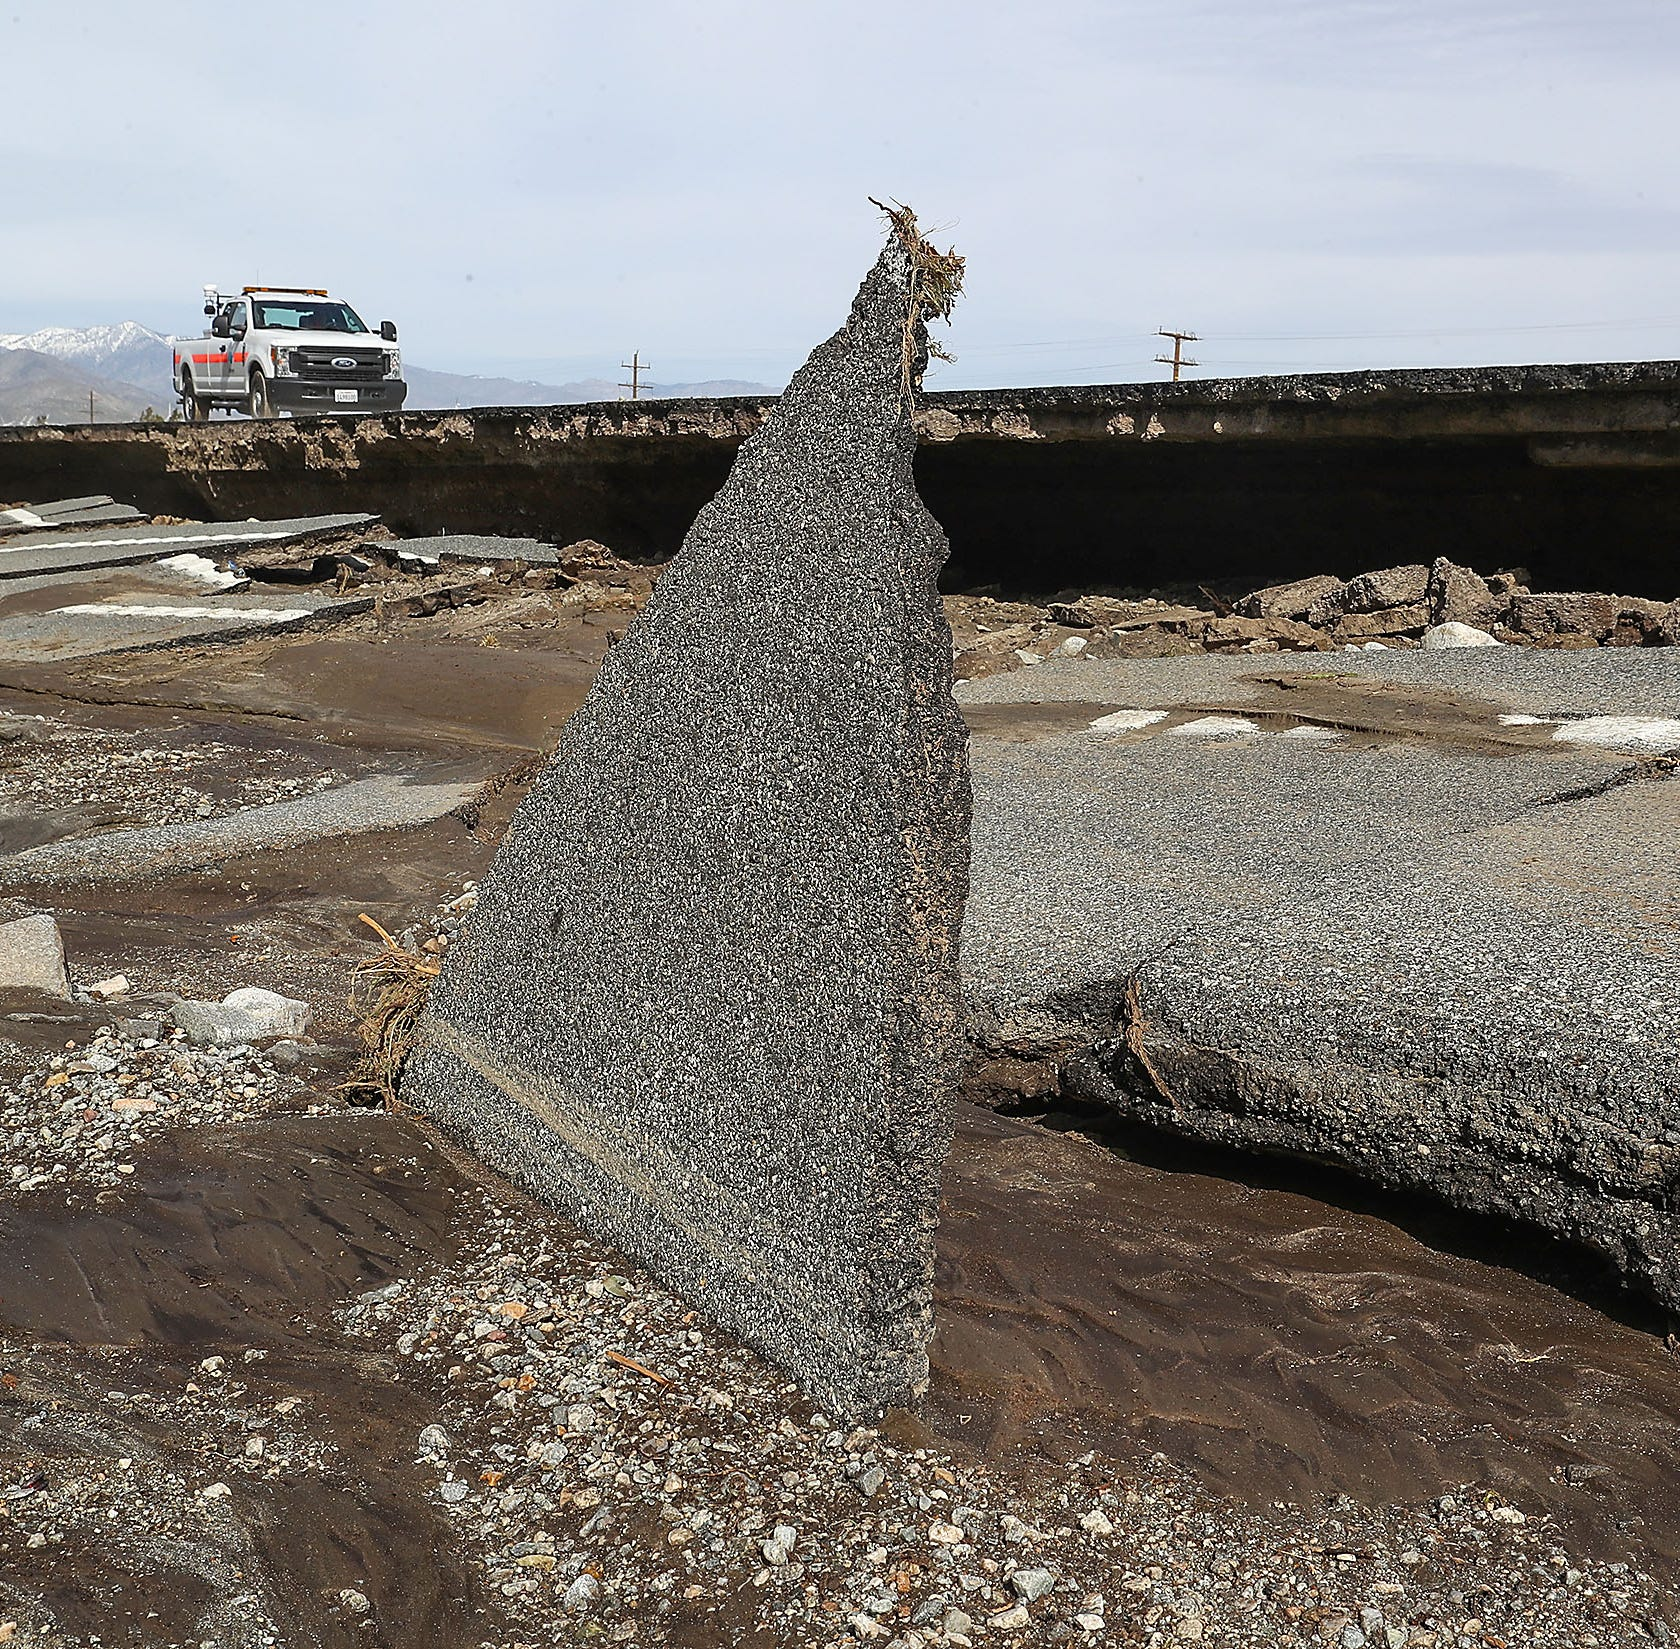 Highway 111 will partially reopen next week after historic storm; Gene Autry Trail reopened